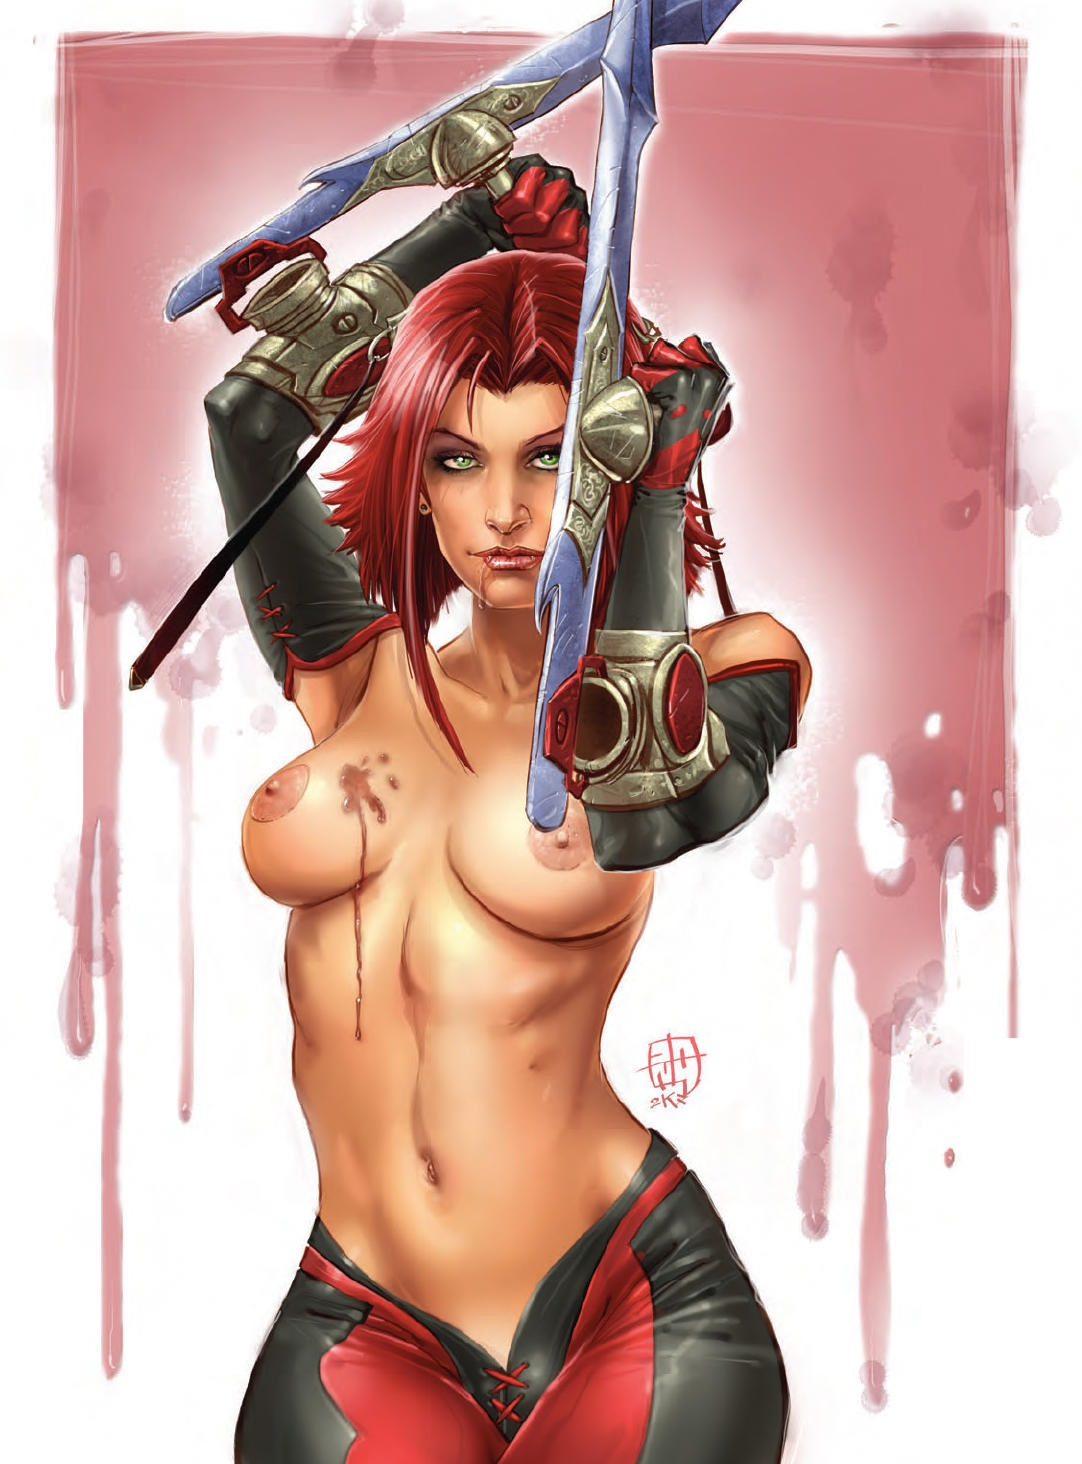 Bloodrayne Topless rule 34 - 1girls 2001 areola areolae artist request bare